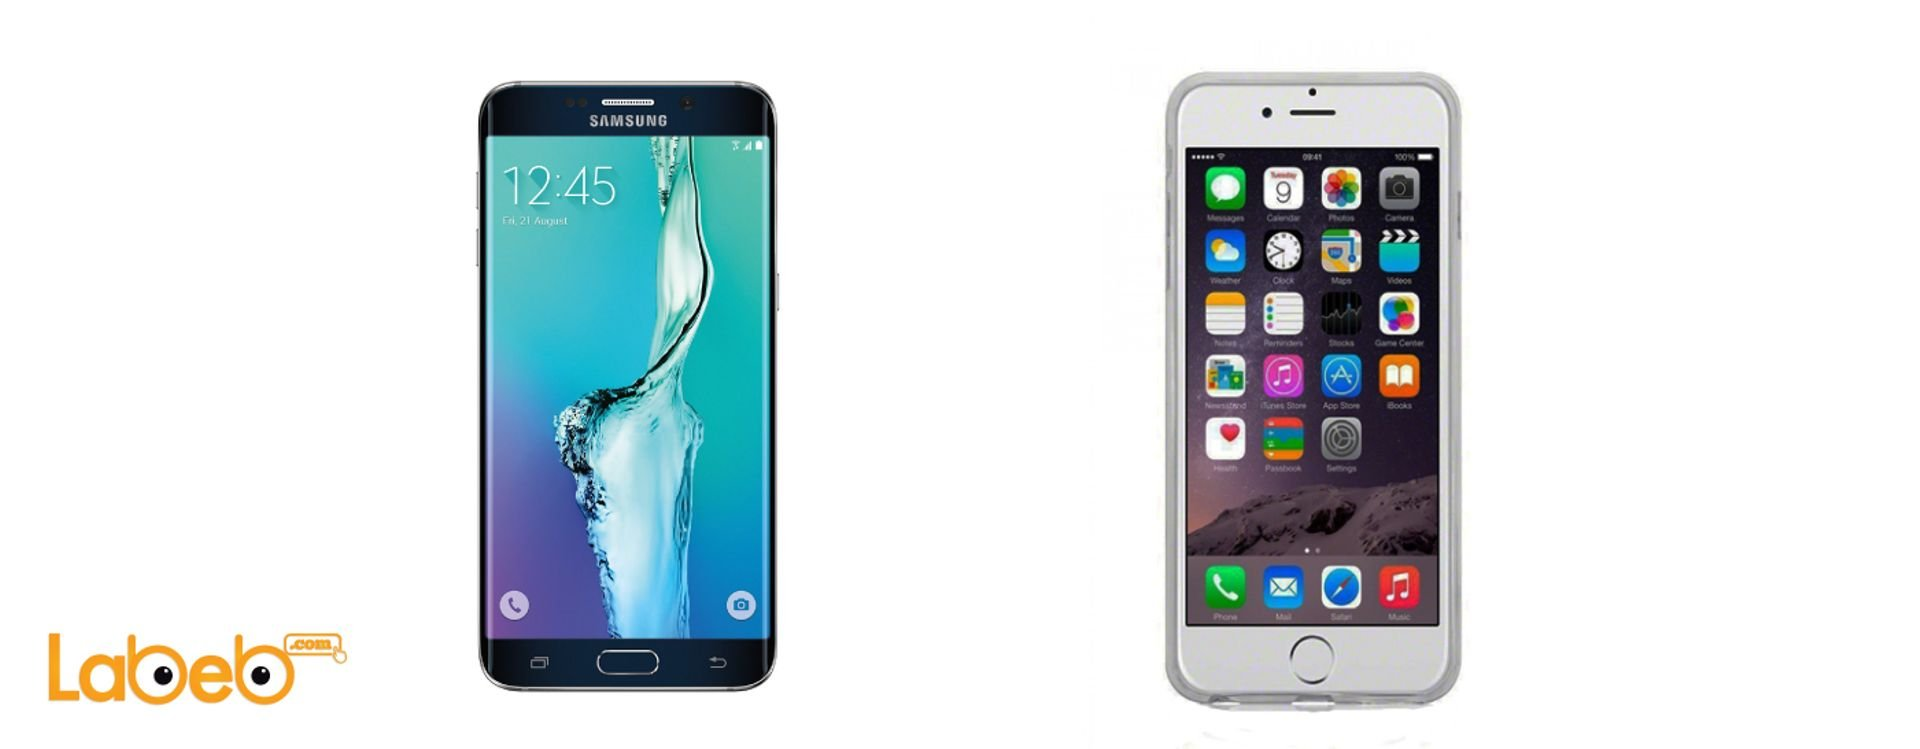 The main differences between Samsung Galaxy S6 Edge Plus and iPhone 6 Plus